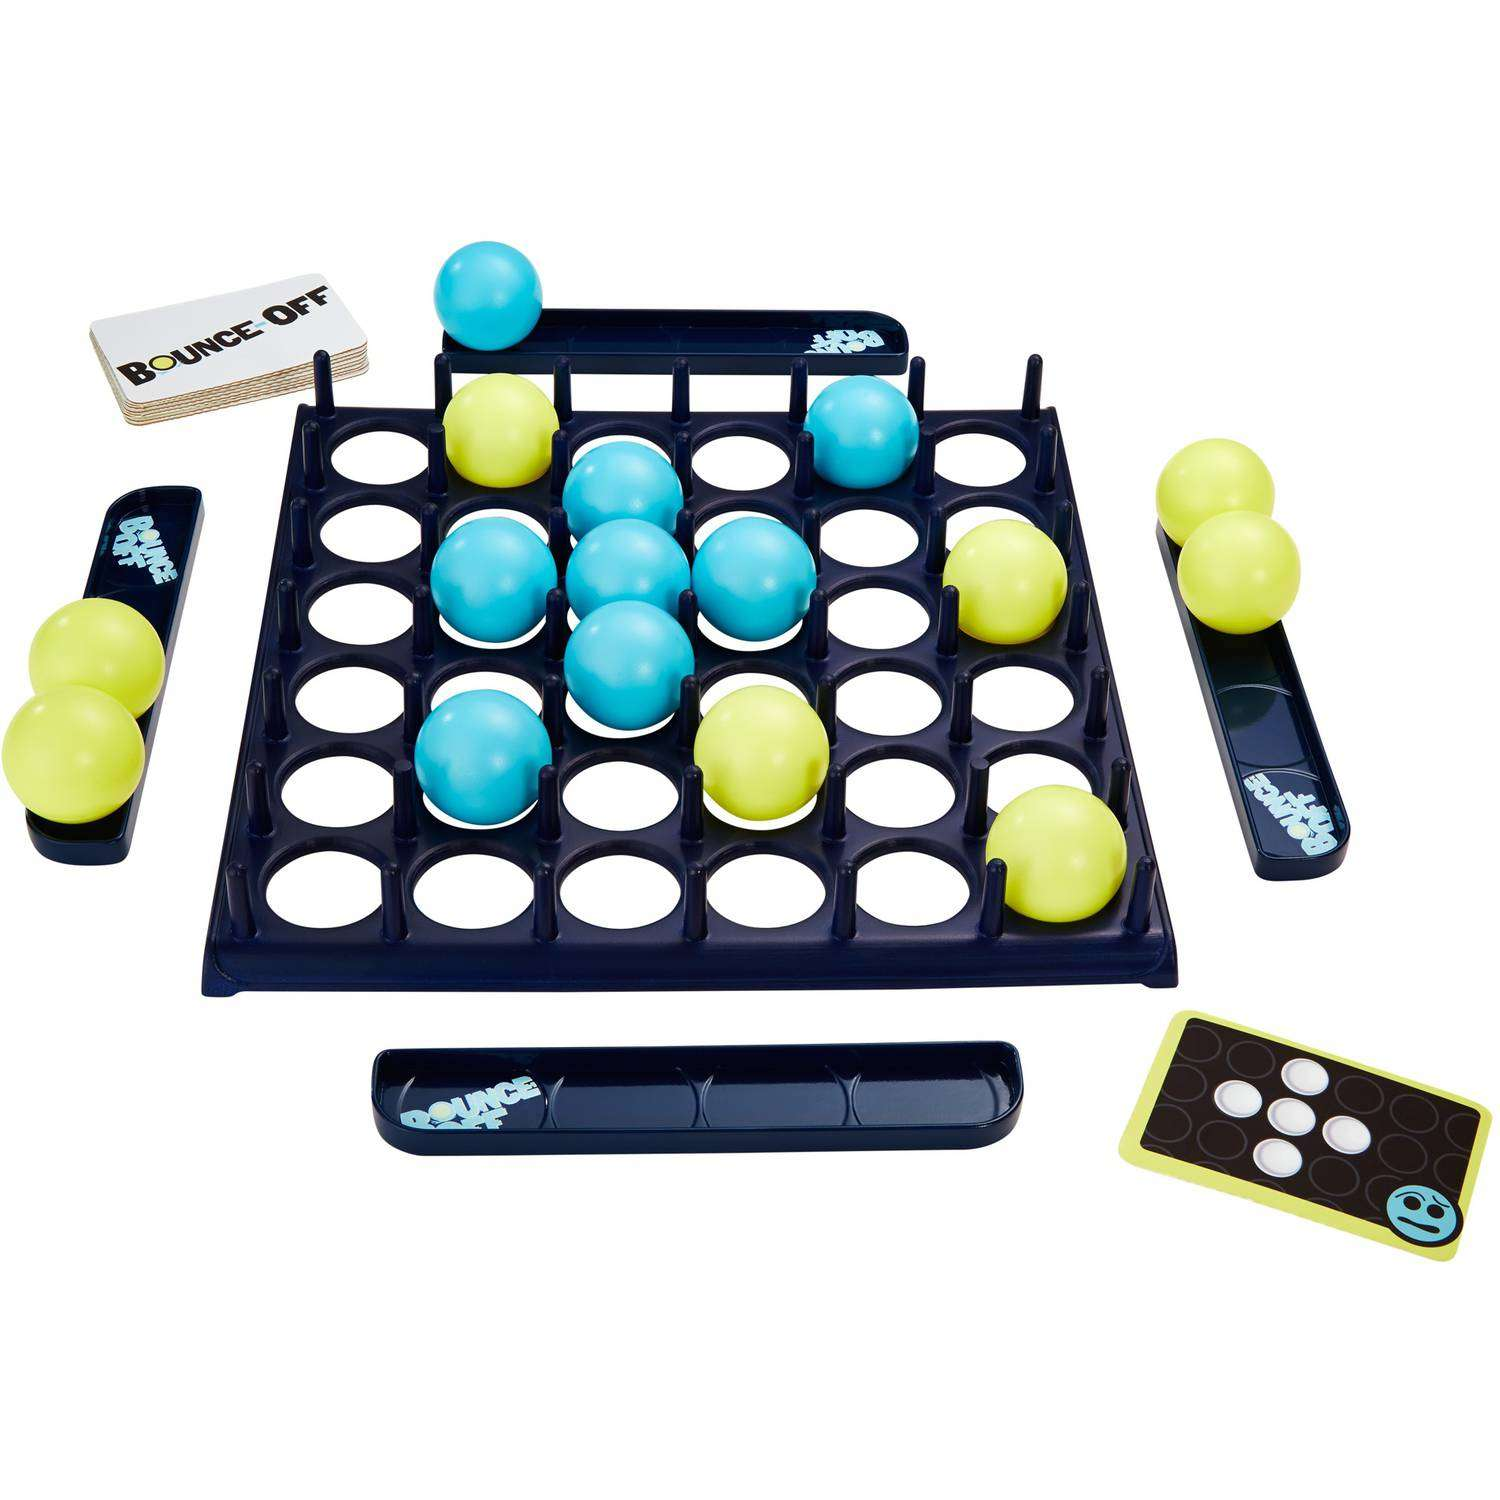 Bounce-Off Challenge Pattern Game, best gifts and toys for 7 year old boys